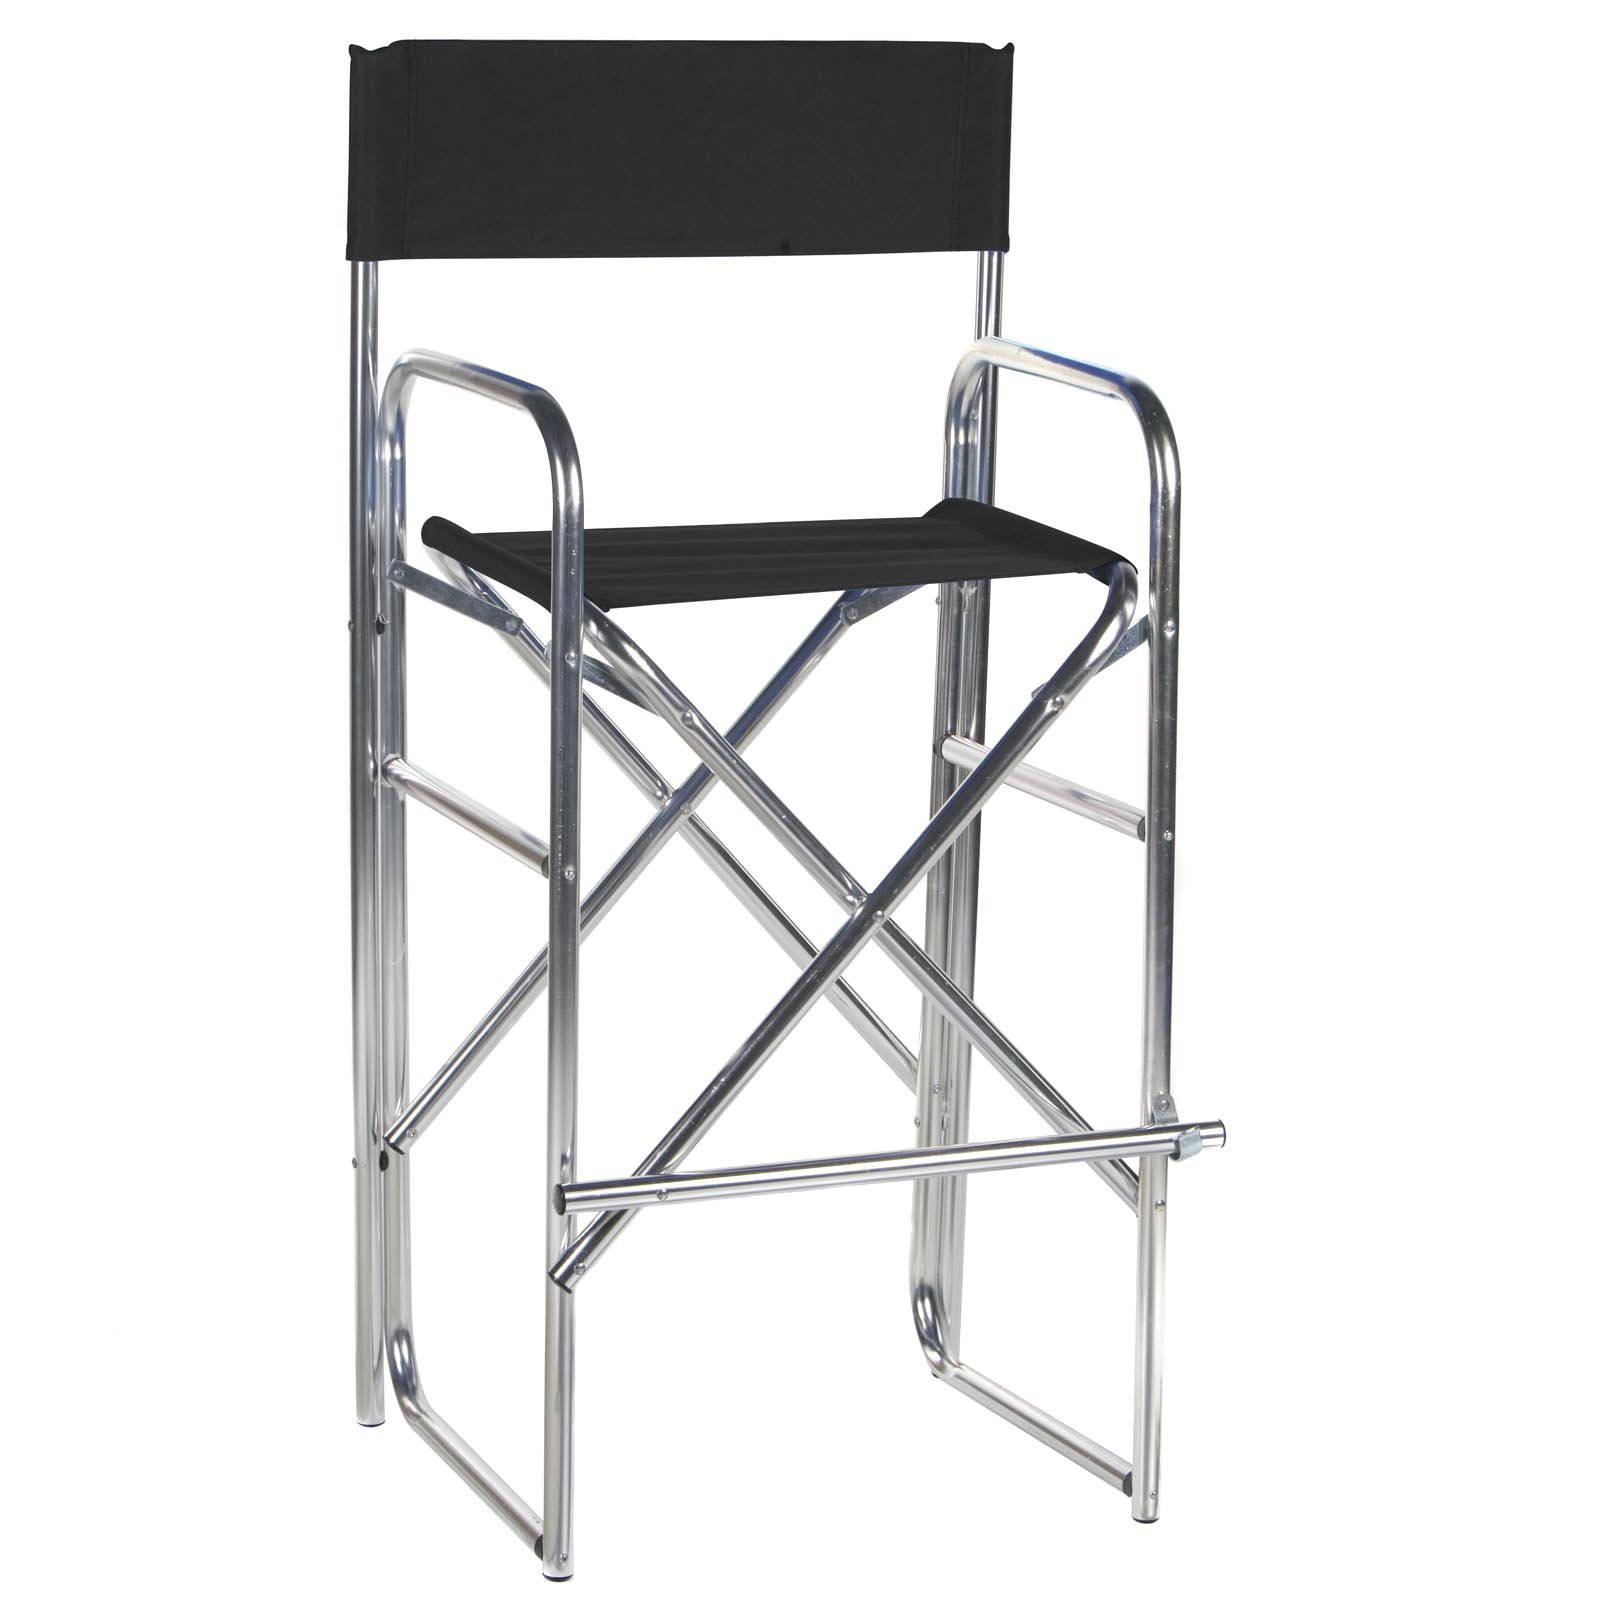 30 5 Inch Aluminum Frame Bar Height Directors Chair Walmart